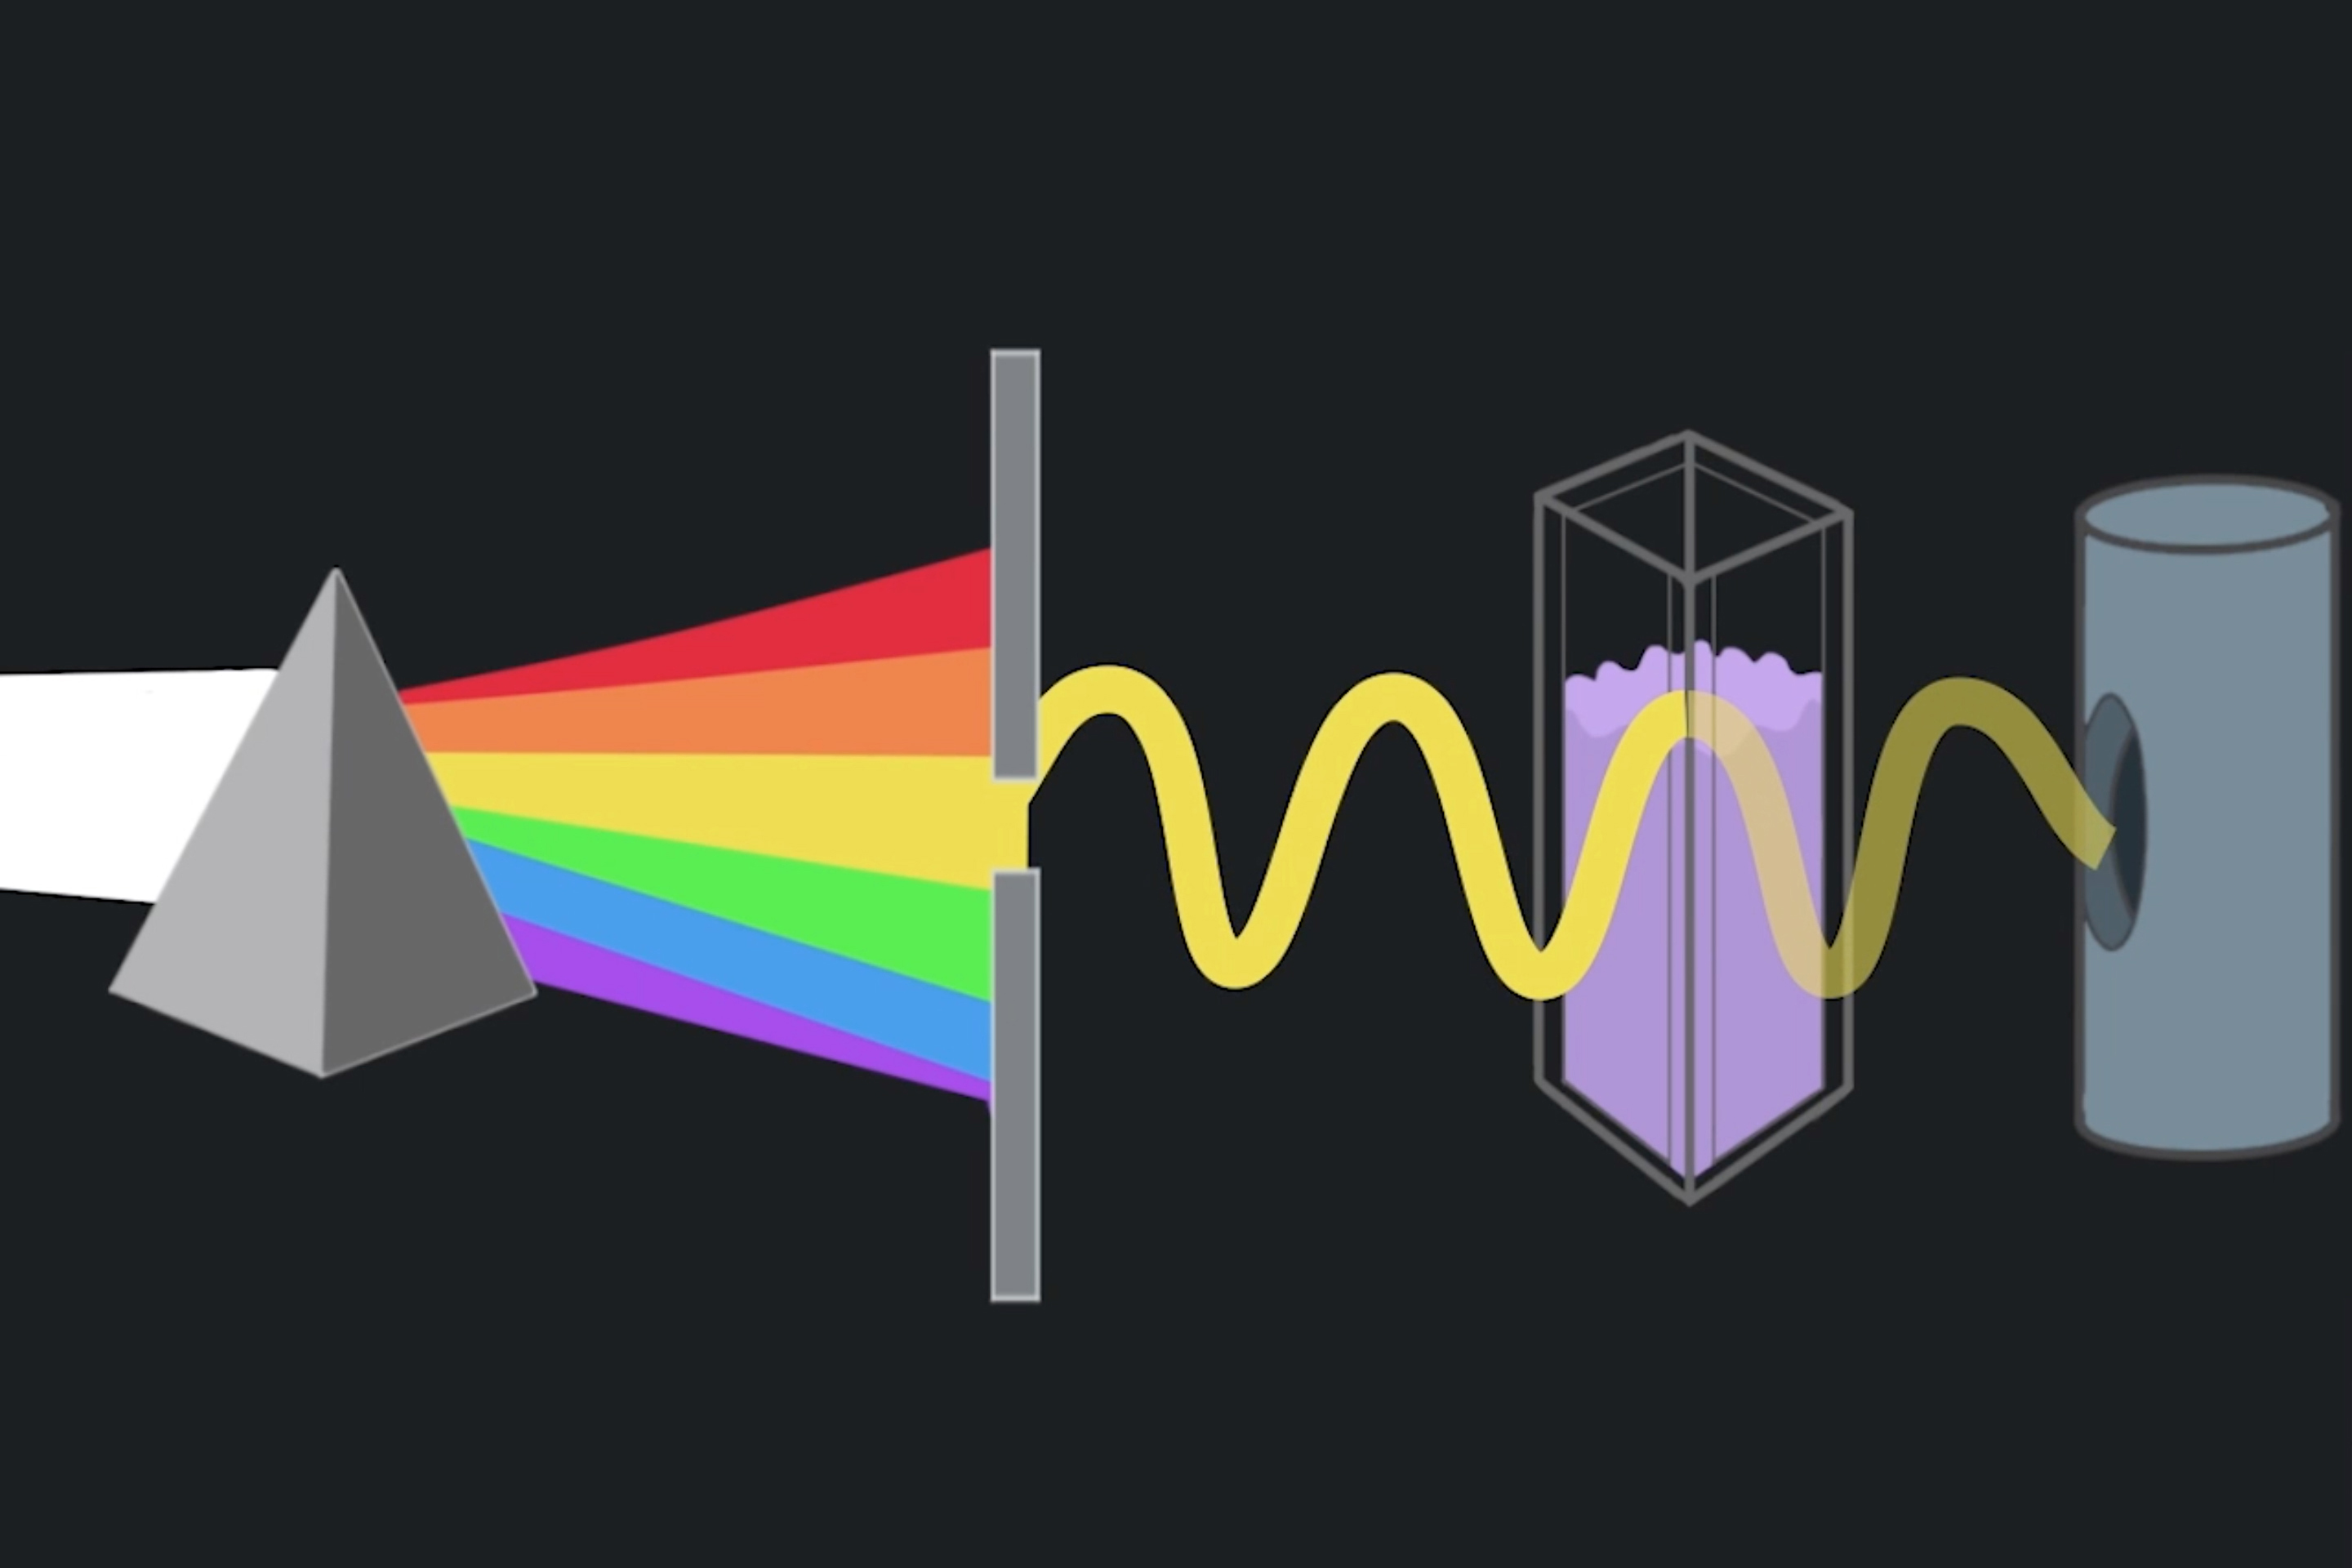 Spectrophotometry is the science of measuring chemical absorption and reflection of light. Illustration by Jessica Ortegon '18 (CLAS)/(SFA), a double major in chemistry and art and art history. The animation was developed by Alexandra Sailer '19 (SFA), a digital media and design major.